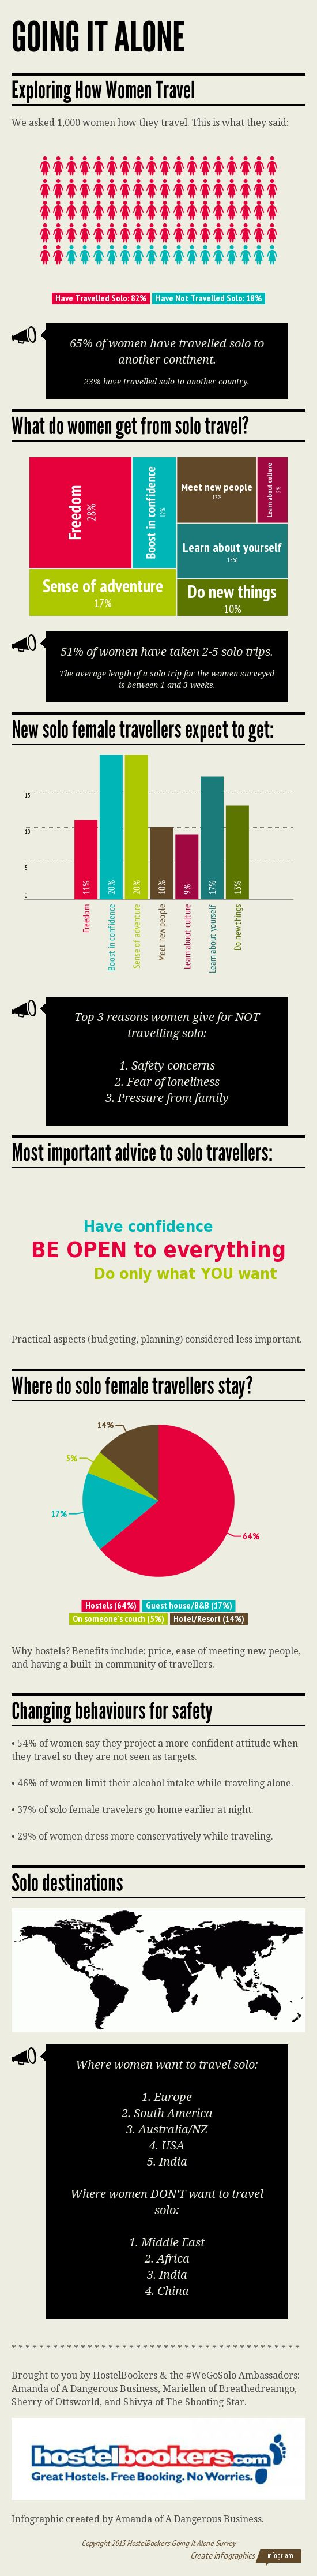 GOING IT ALONE Infographic from thhe #WeGoSolo Survey of 1000+ women on why they travel. 28% of travellers looking for freedom